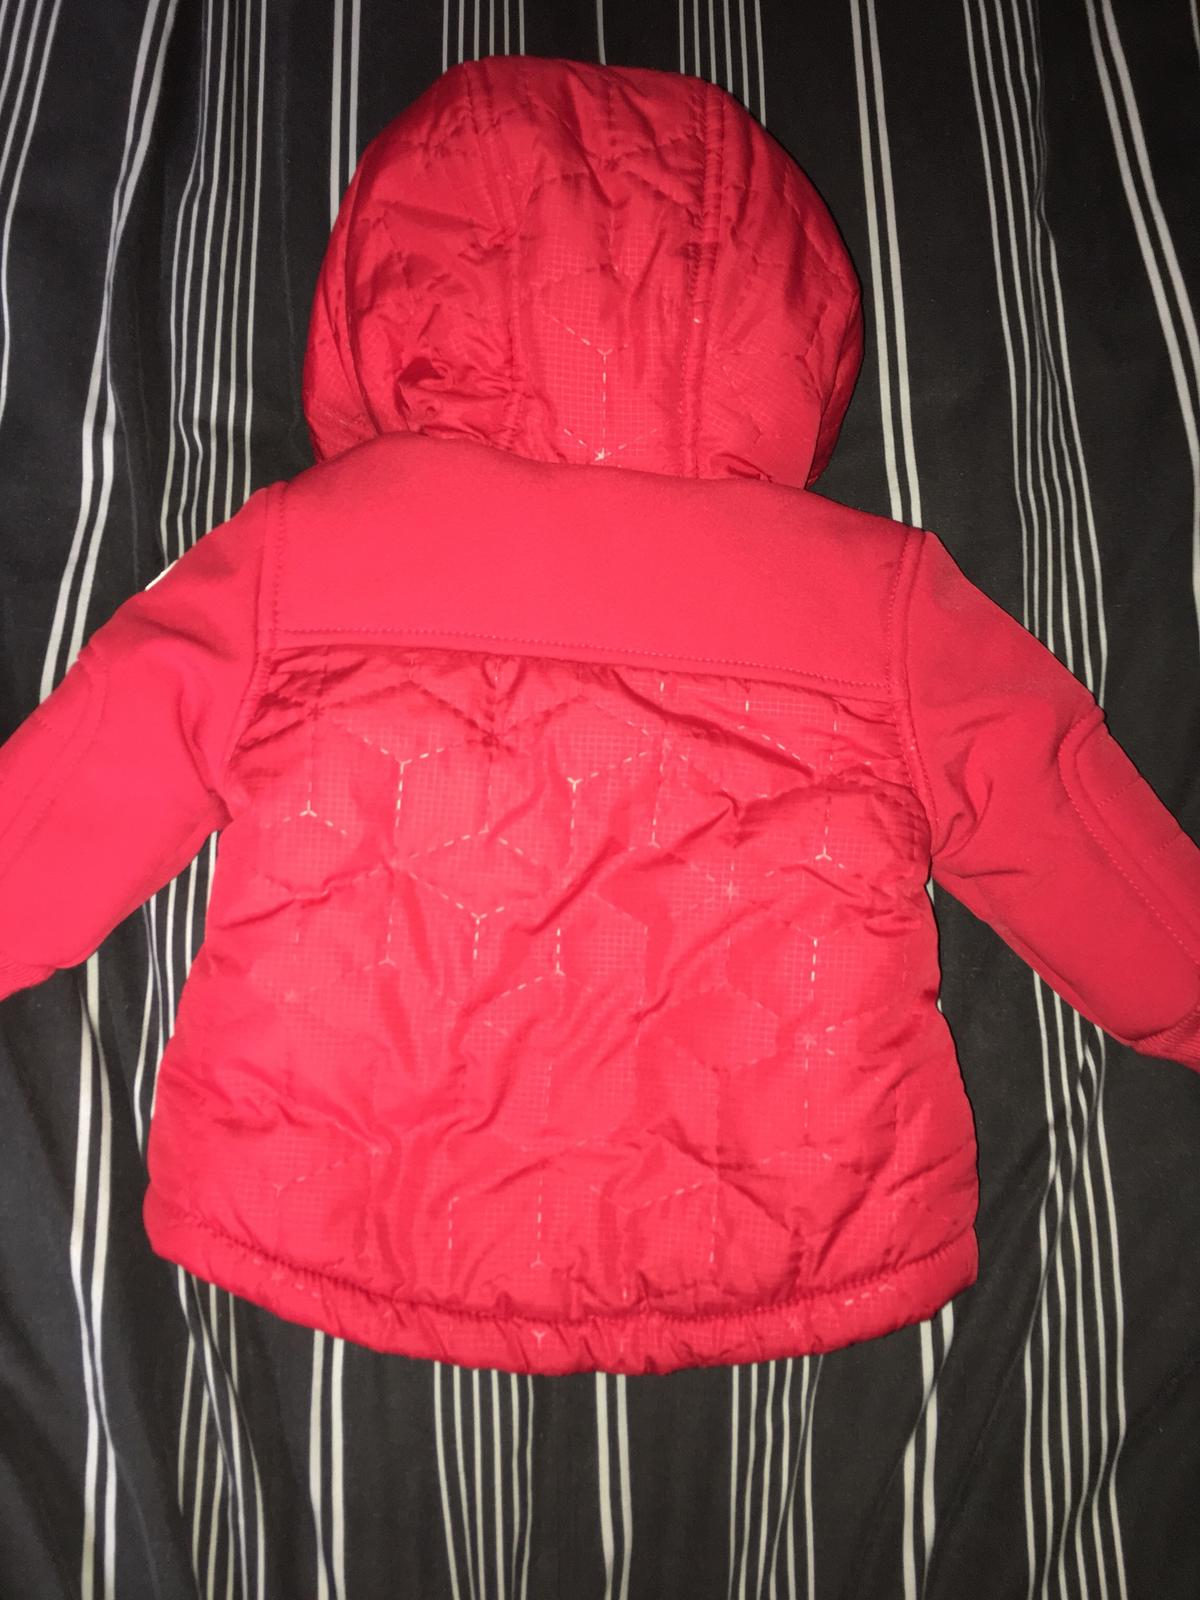 576caea8f Ted Baker Baby Boys Coat 0-3 Months in SE13 London for £14.00 for ...